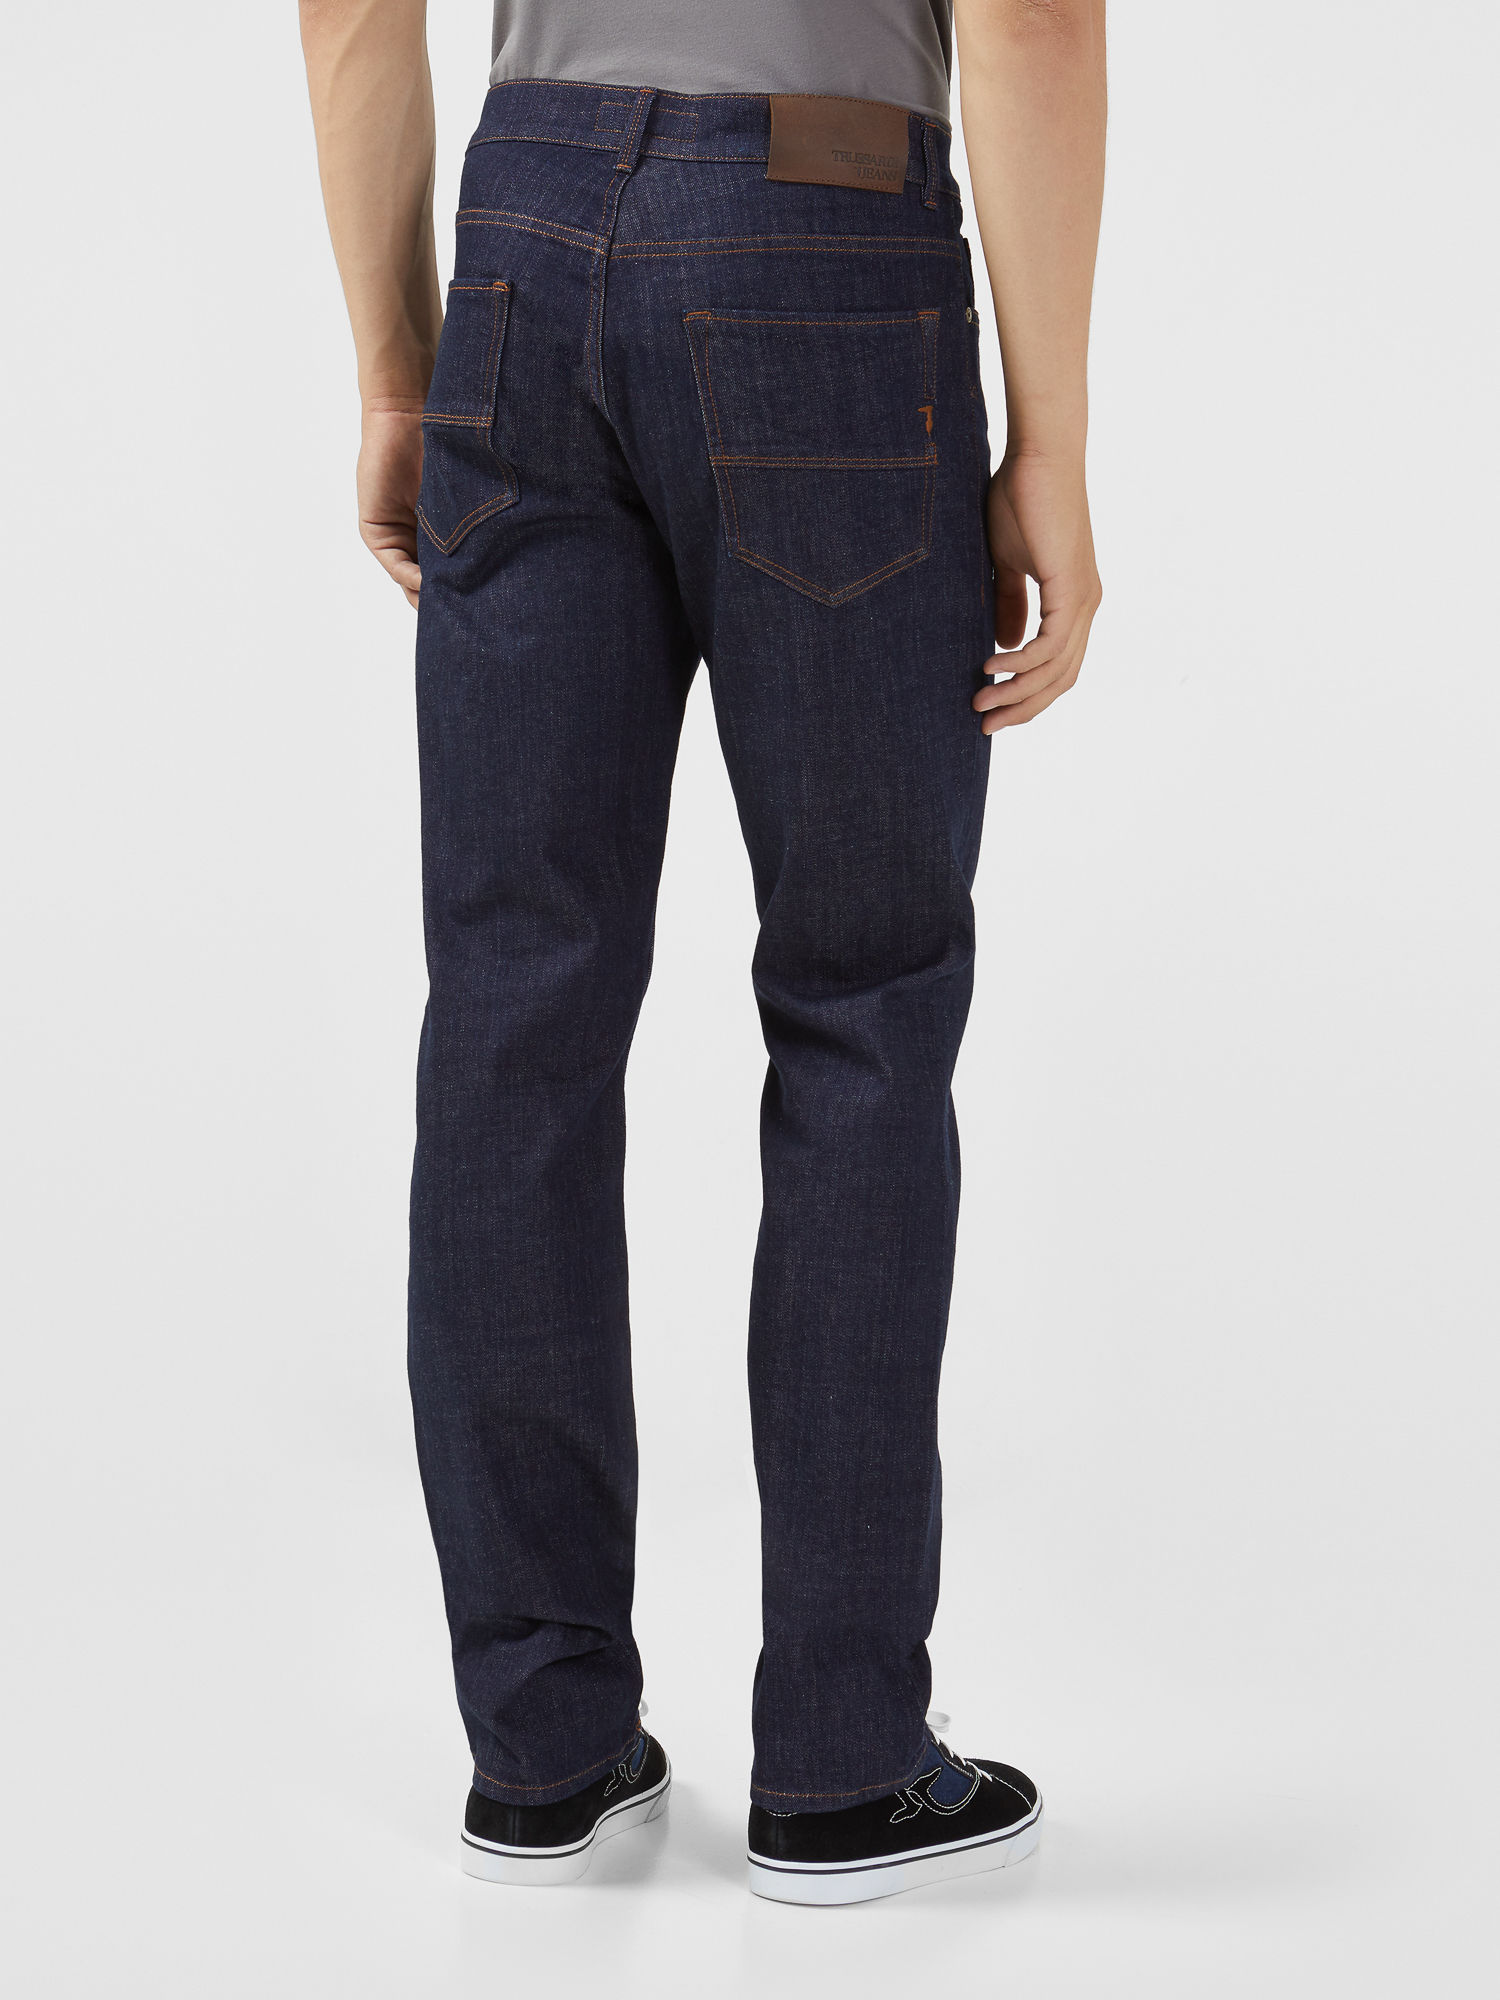 Jeans Trussardi 380 close cairo blue